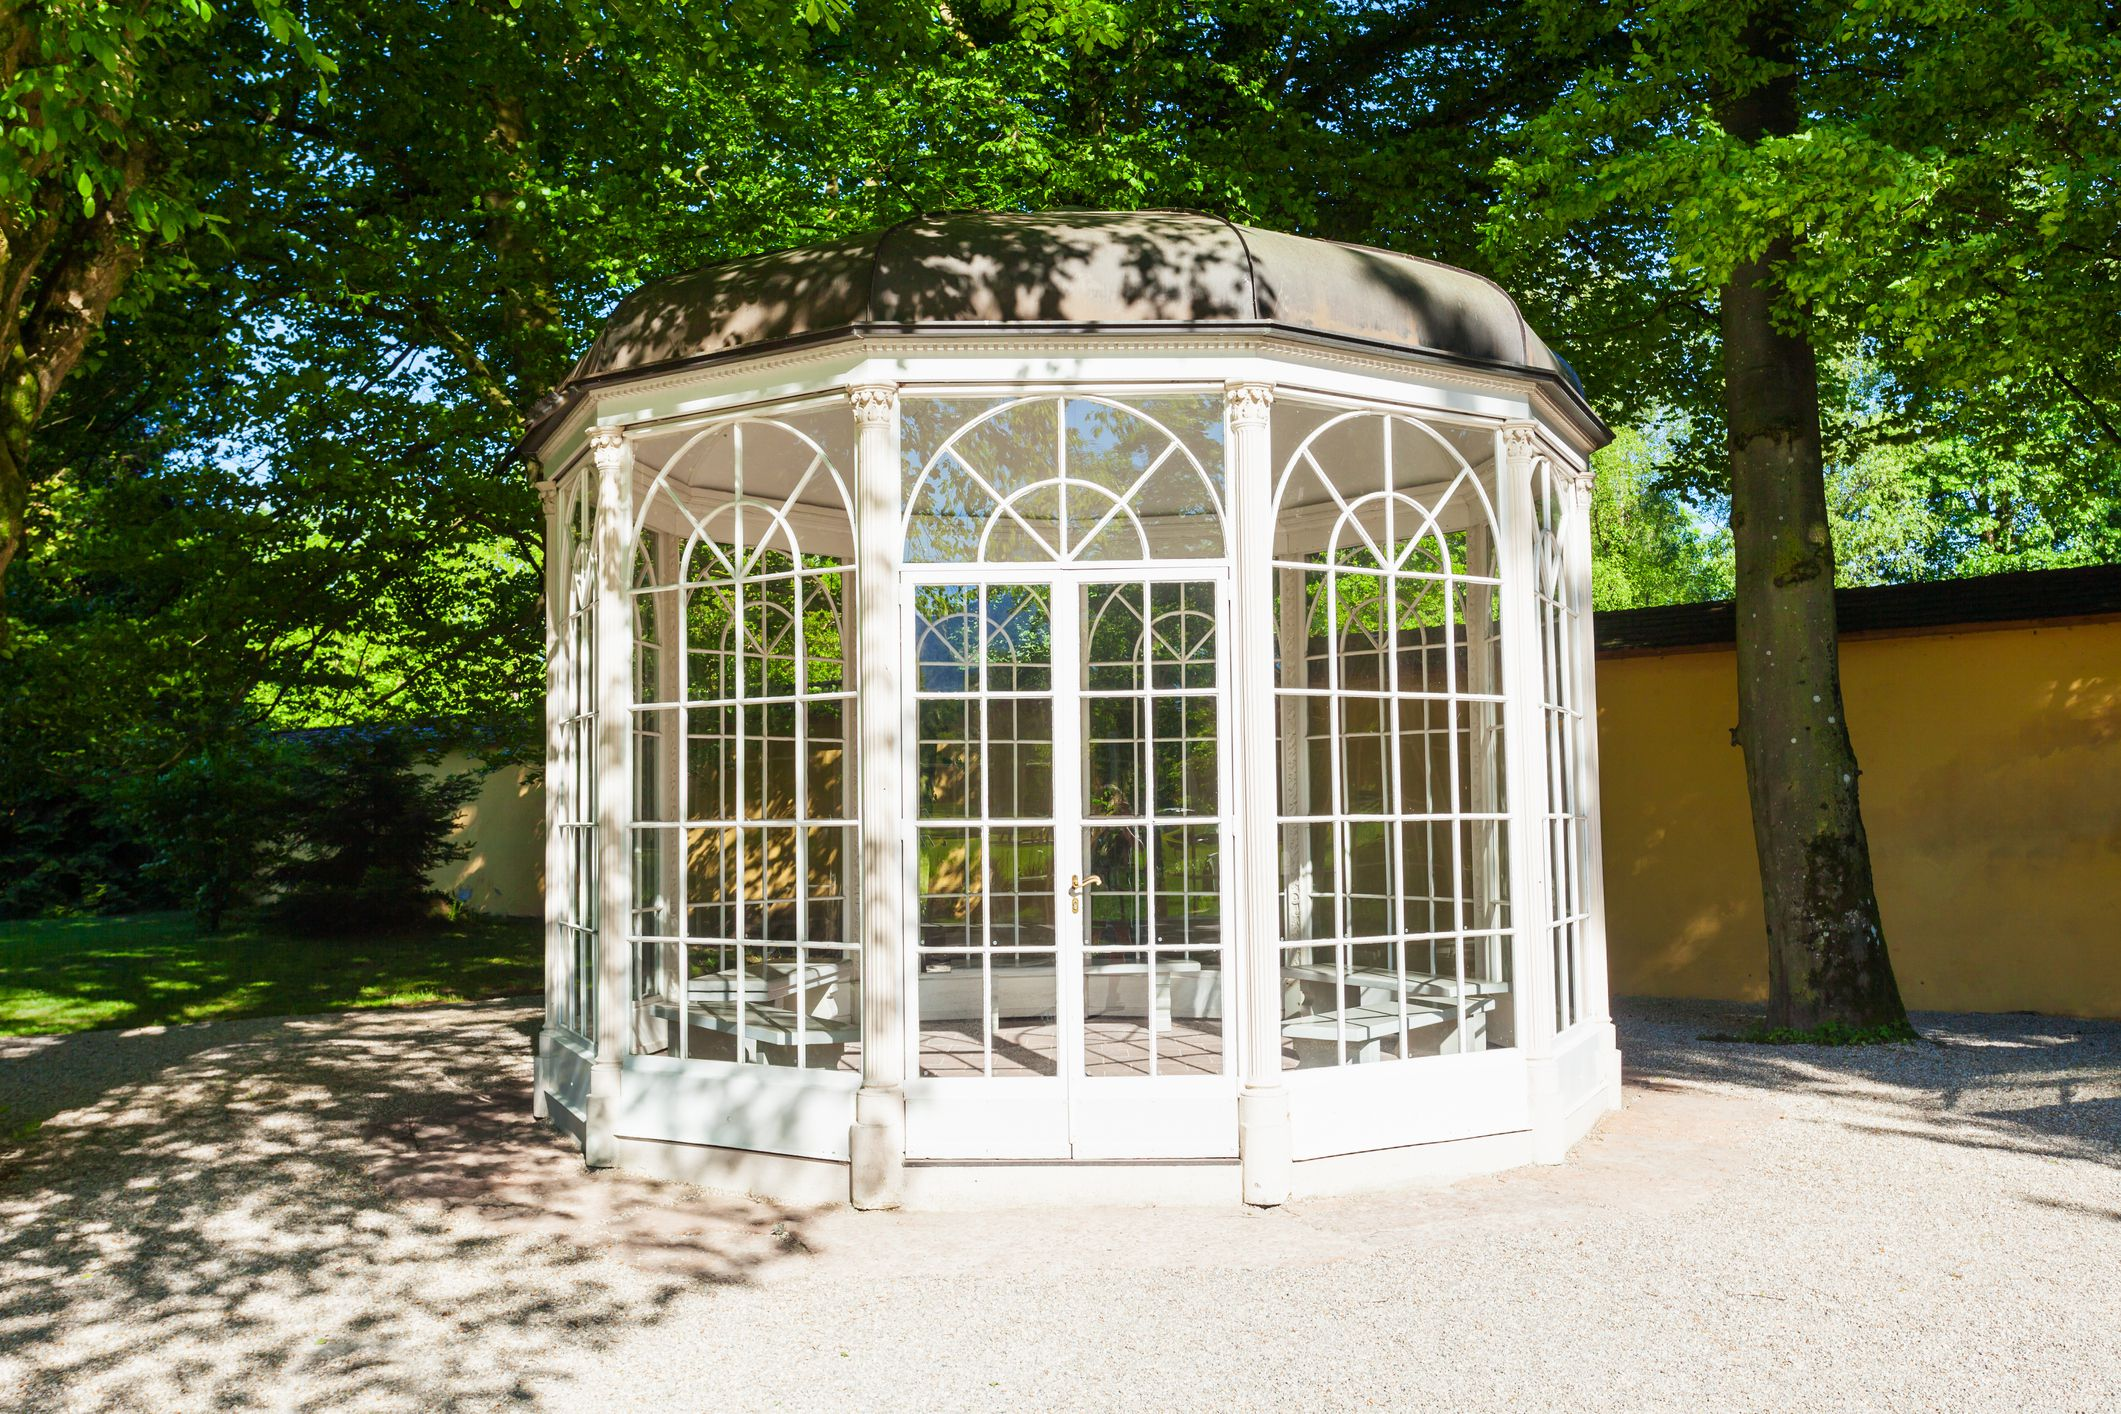 The Sound of Music Pavilion near the Hellbrunn Palace